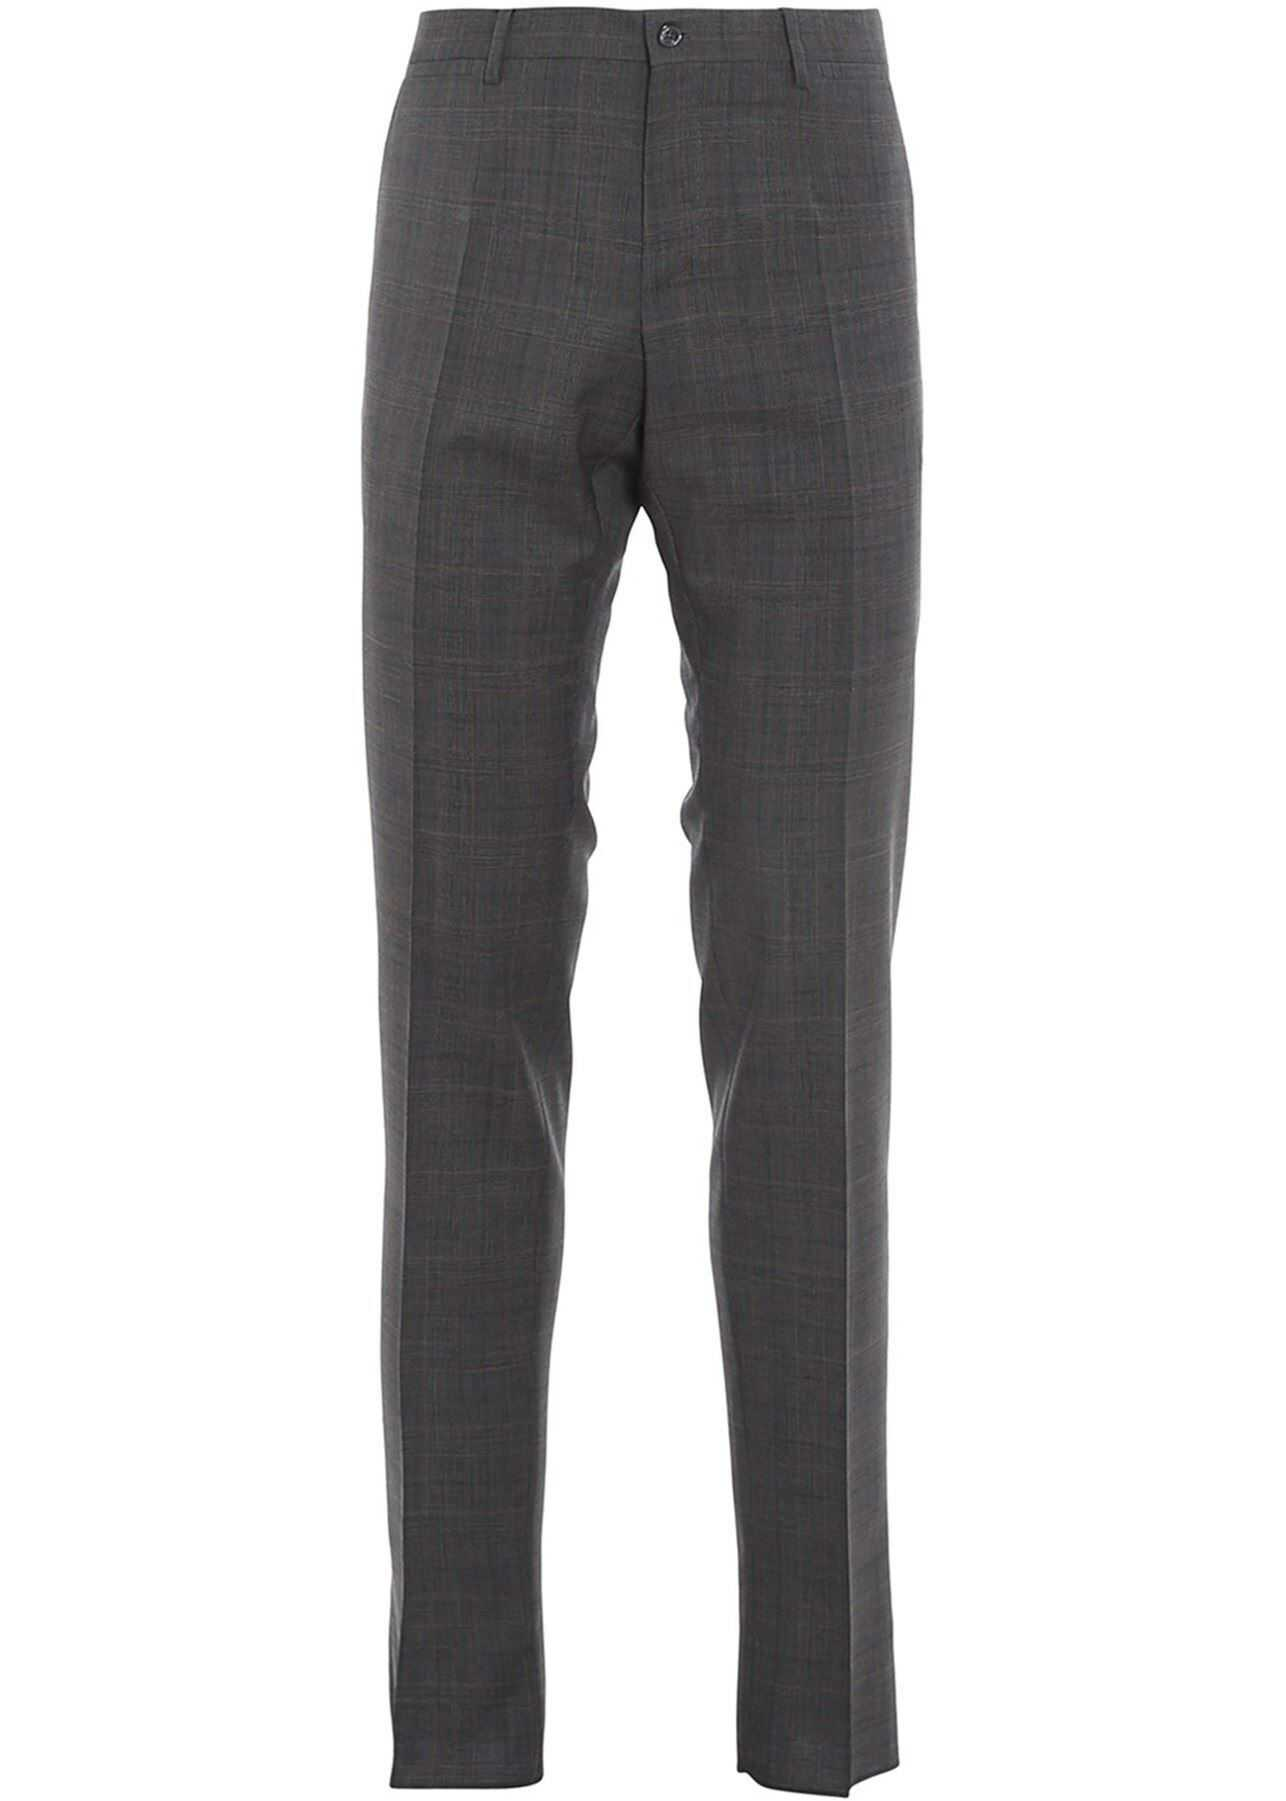 Dolce & Gabbana Prince Of Wales Wool Trousers In Grey Grey imagine